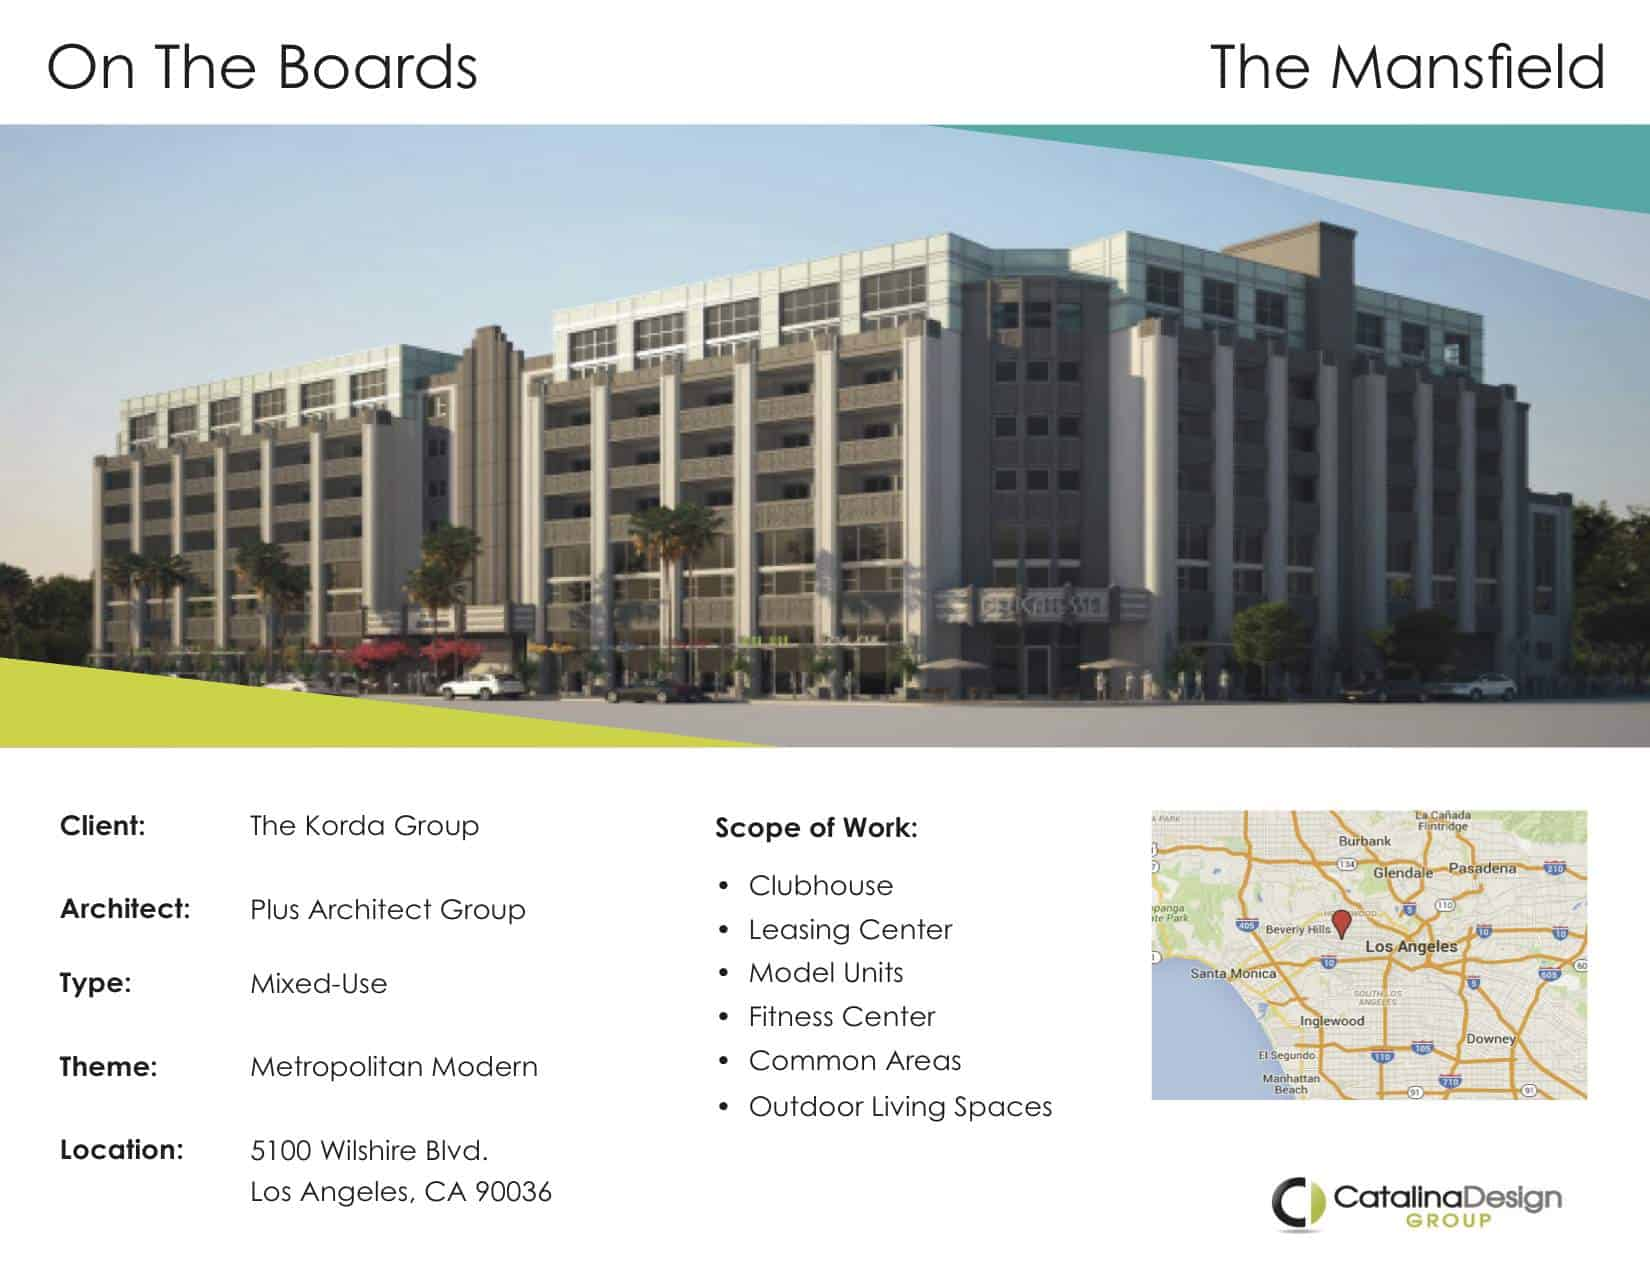 The Mansfield The Korda Group Los Angeles, CA, Commercial Interior Design Projects